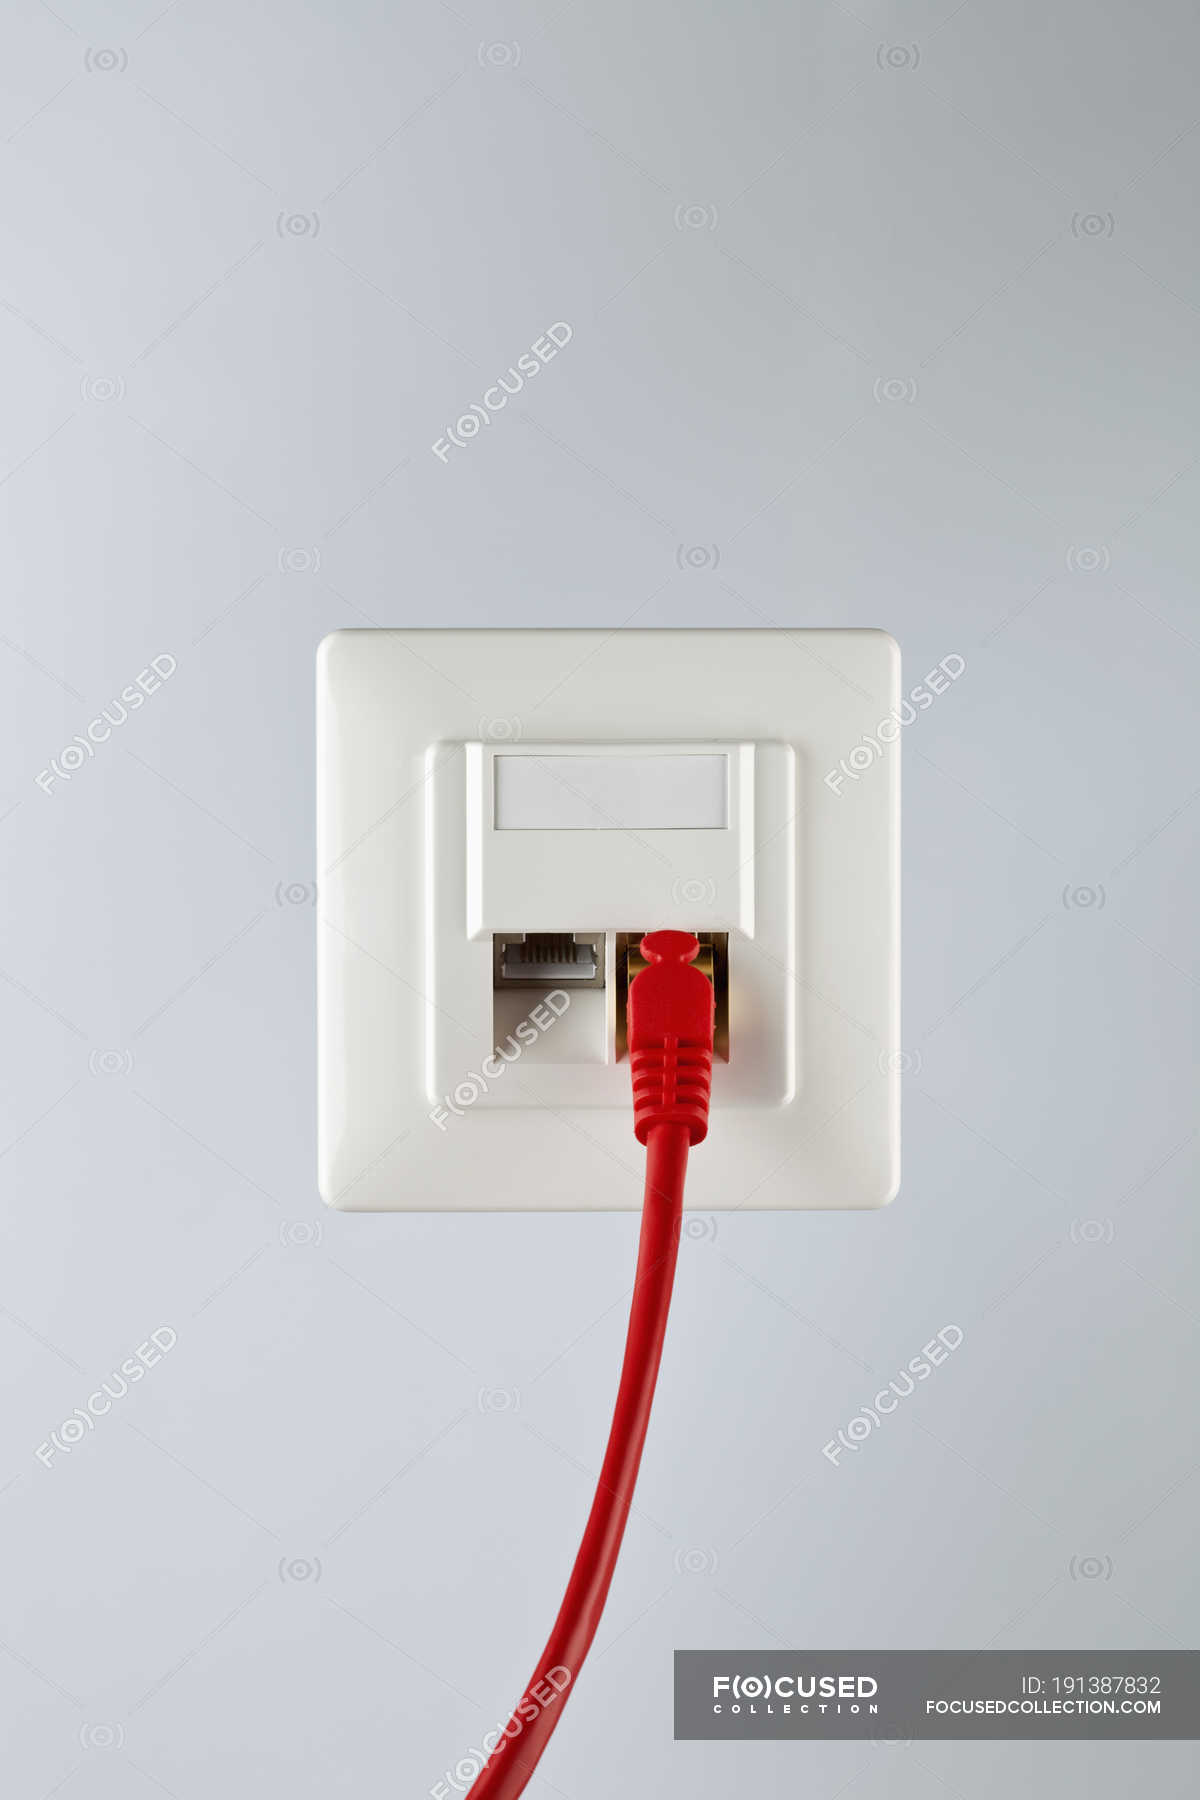 Red Network Cable Plugged Into Wall Socket Studio Shot Wiring Ethernet Plug Connection Stock Photo 191387832